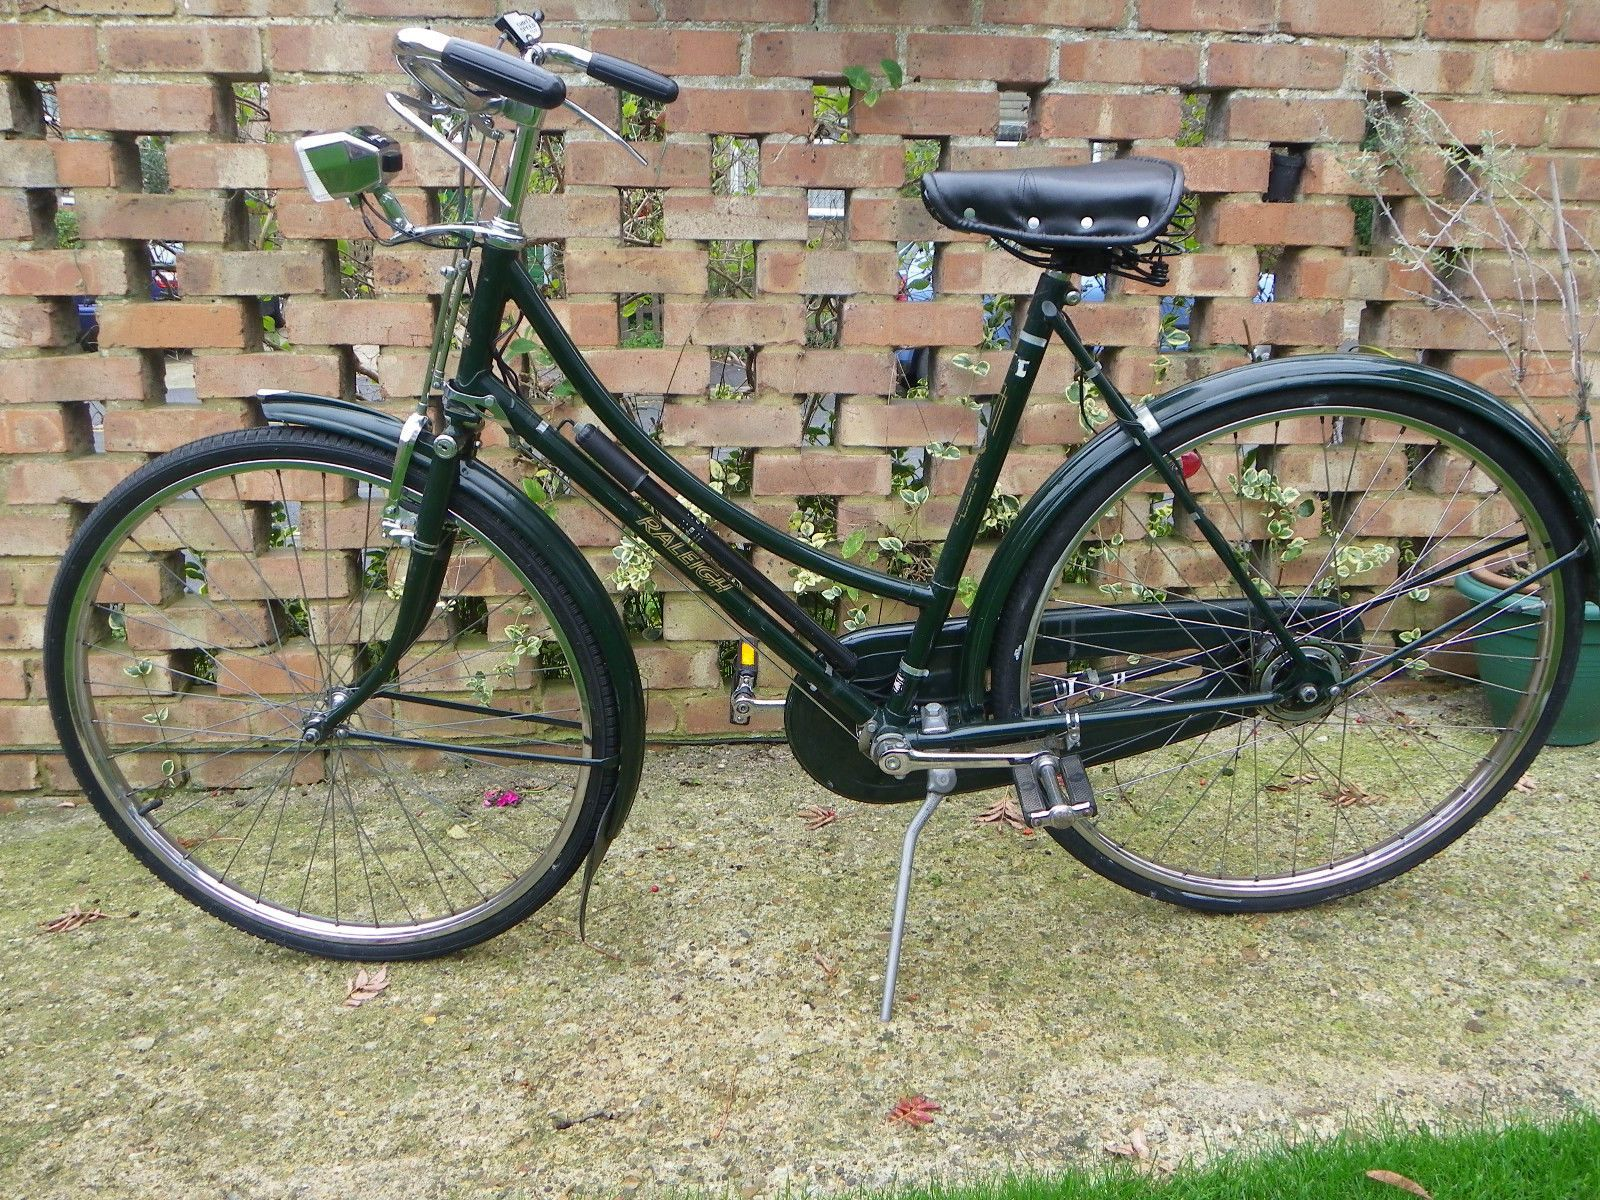 Vintage Raleigh Superbe Ladies Cycle - Ebay